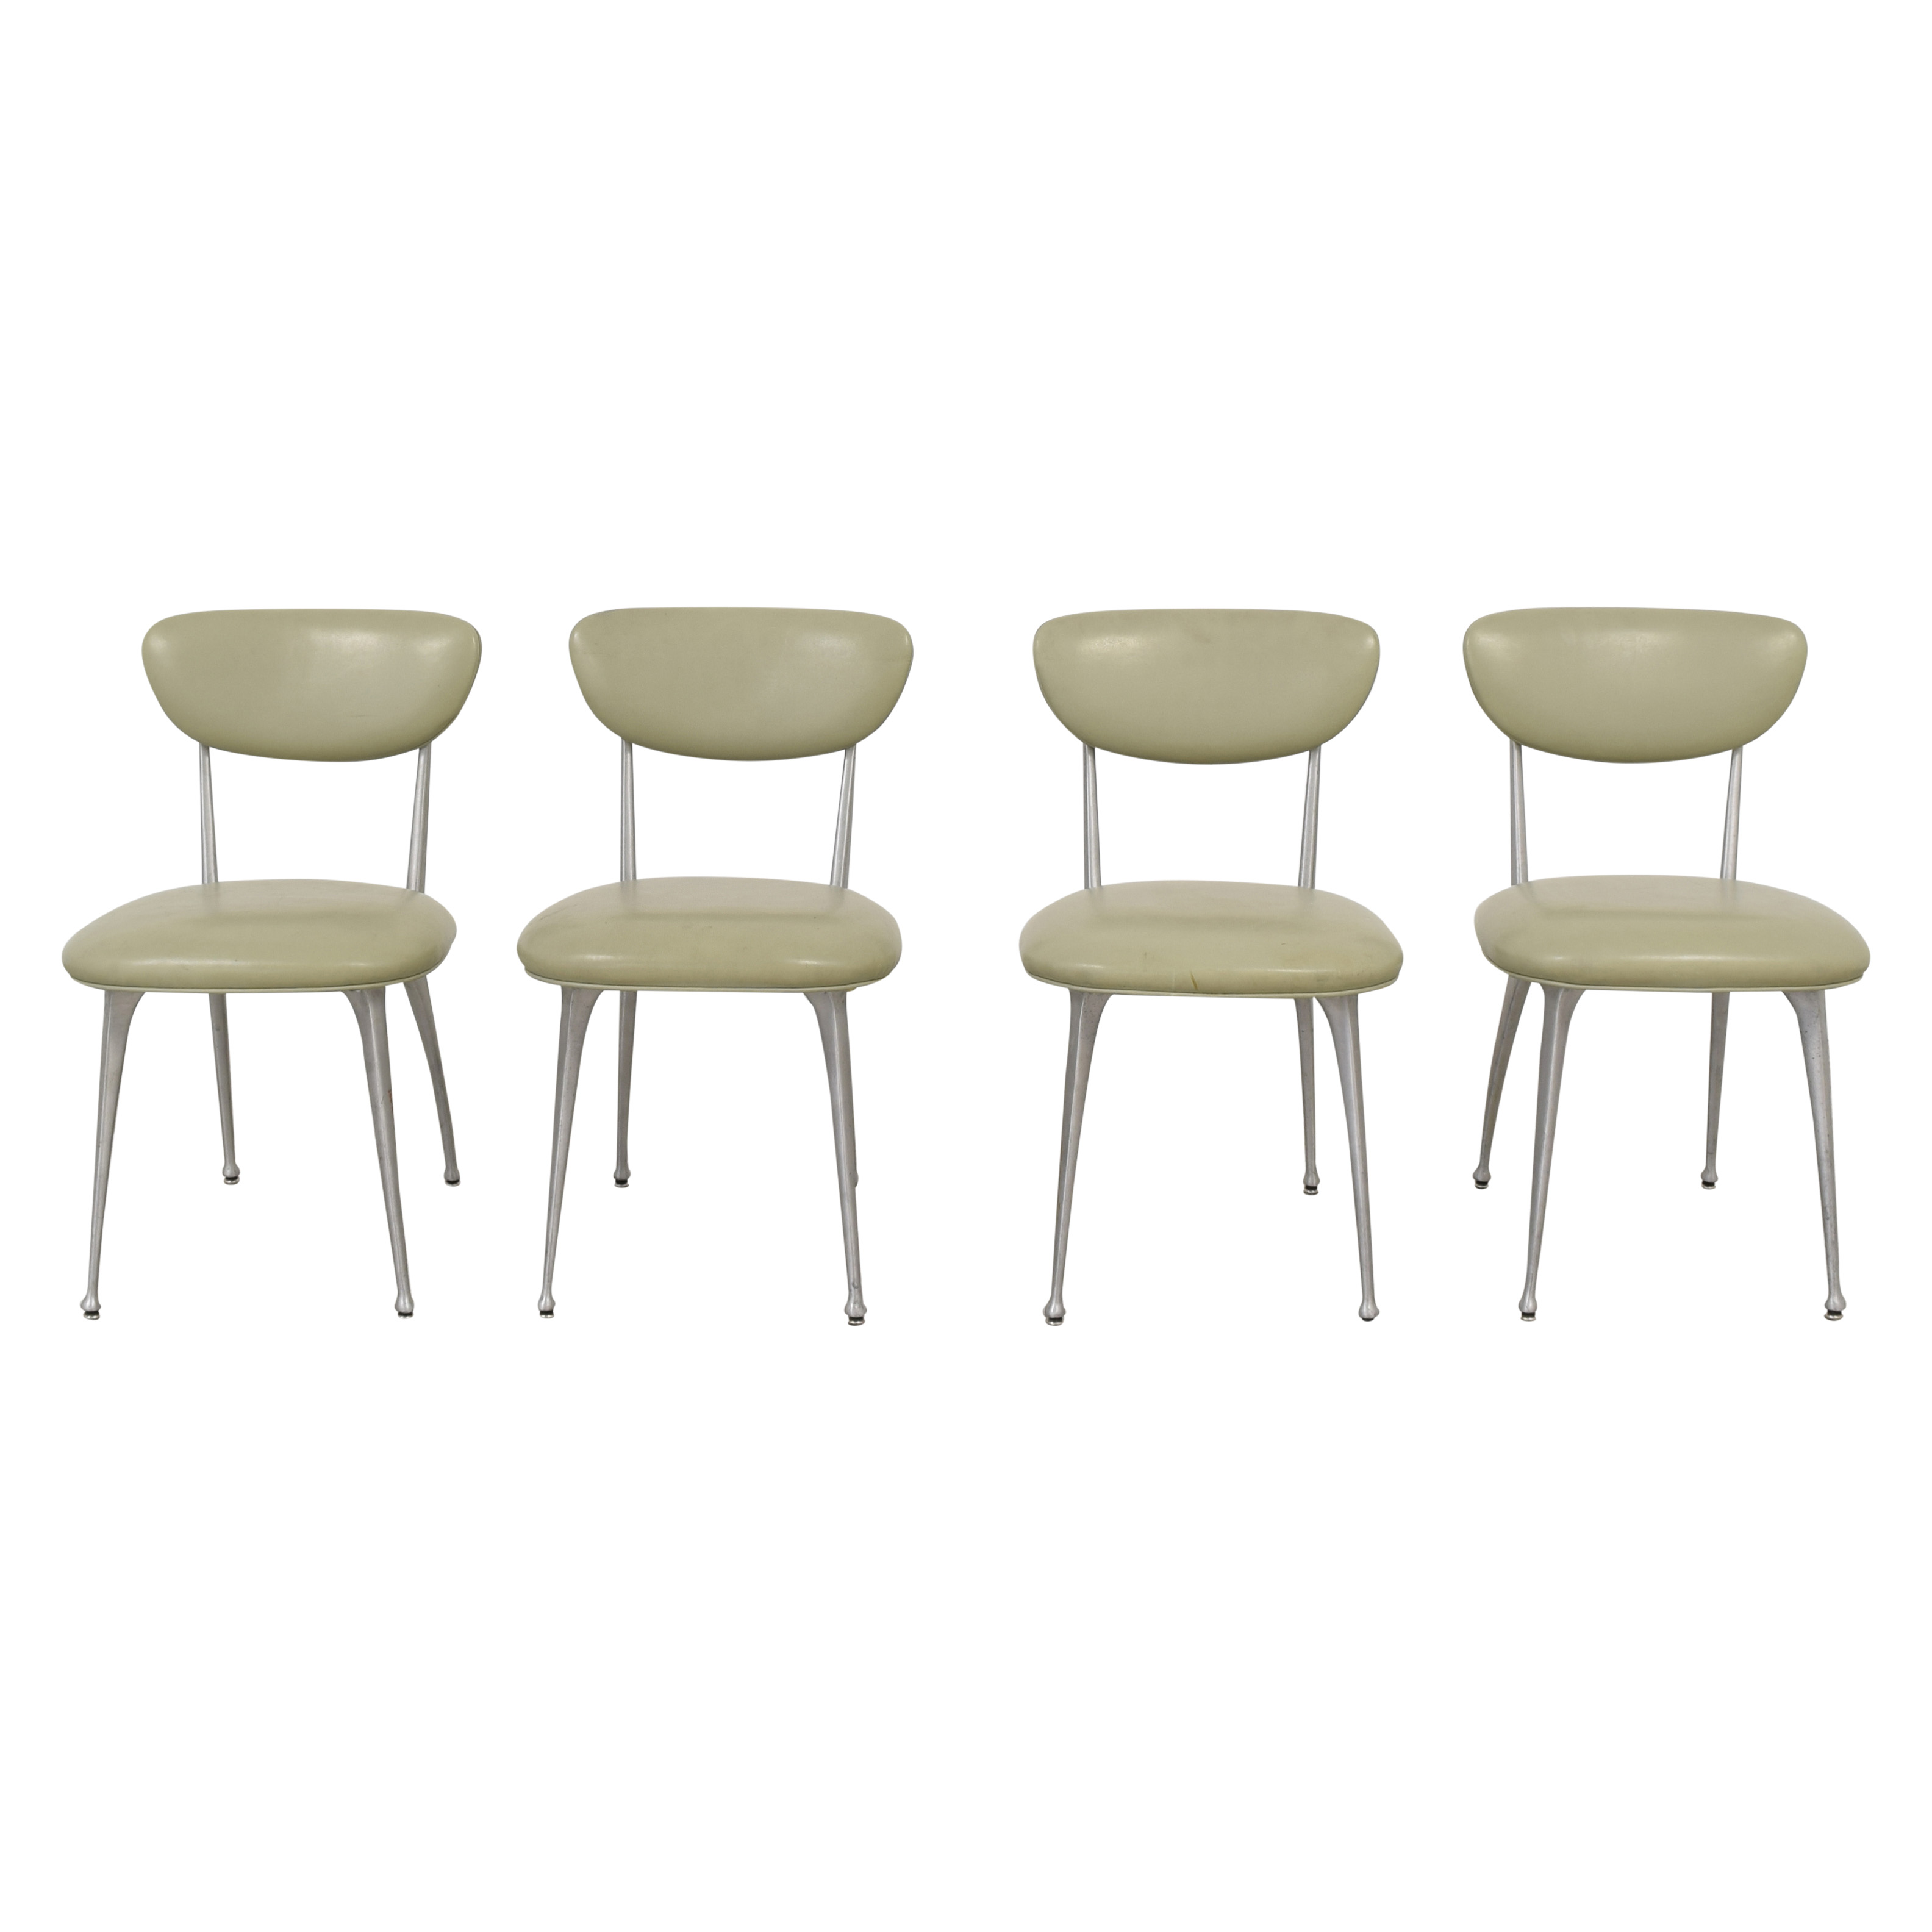 buy Modernica Modernica Vintage Dining Chairs online